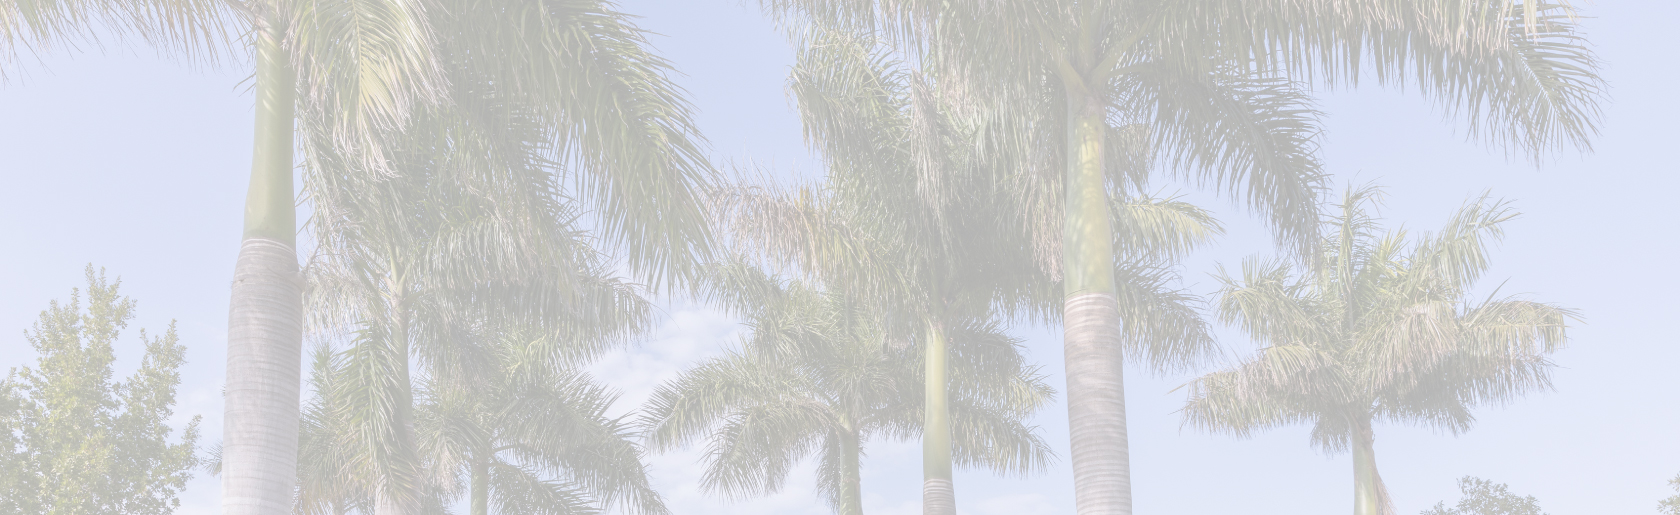 background photo of palm trees for header